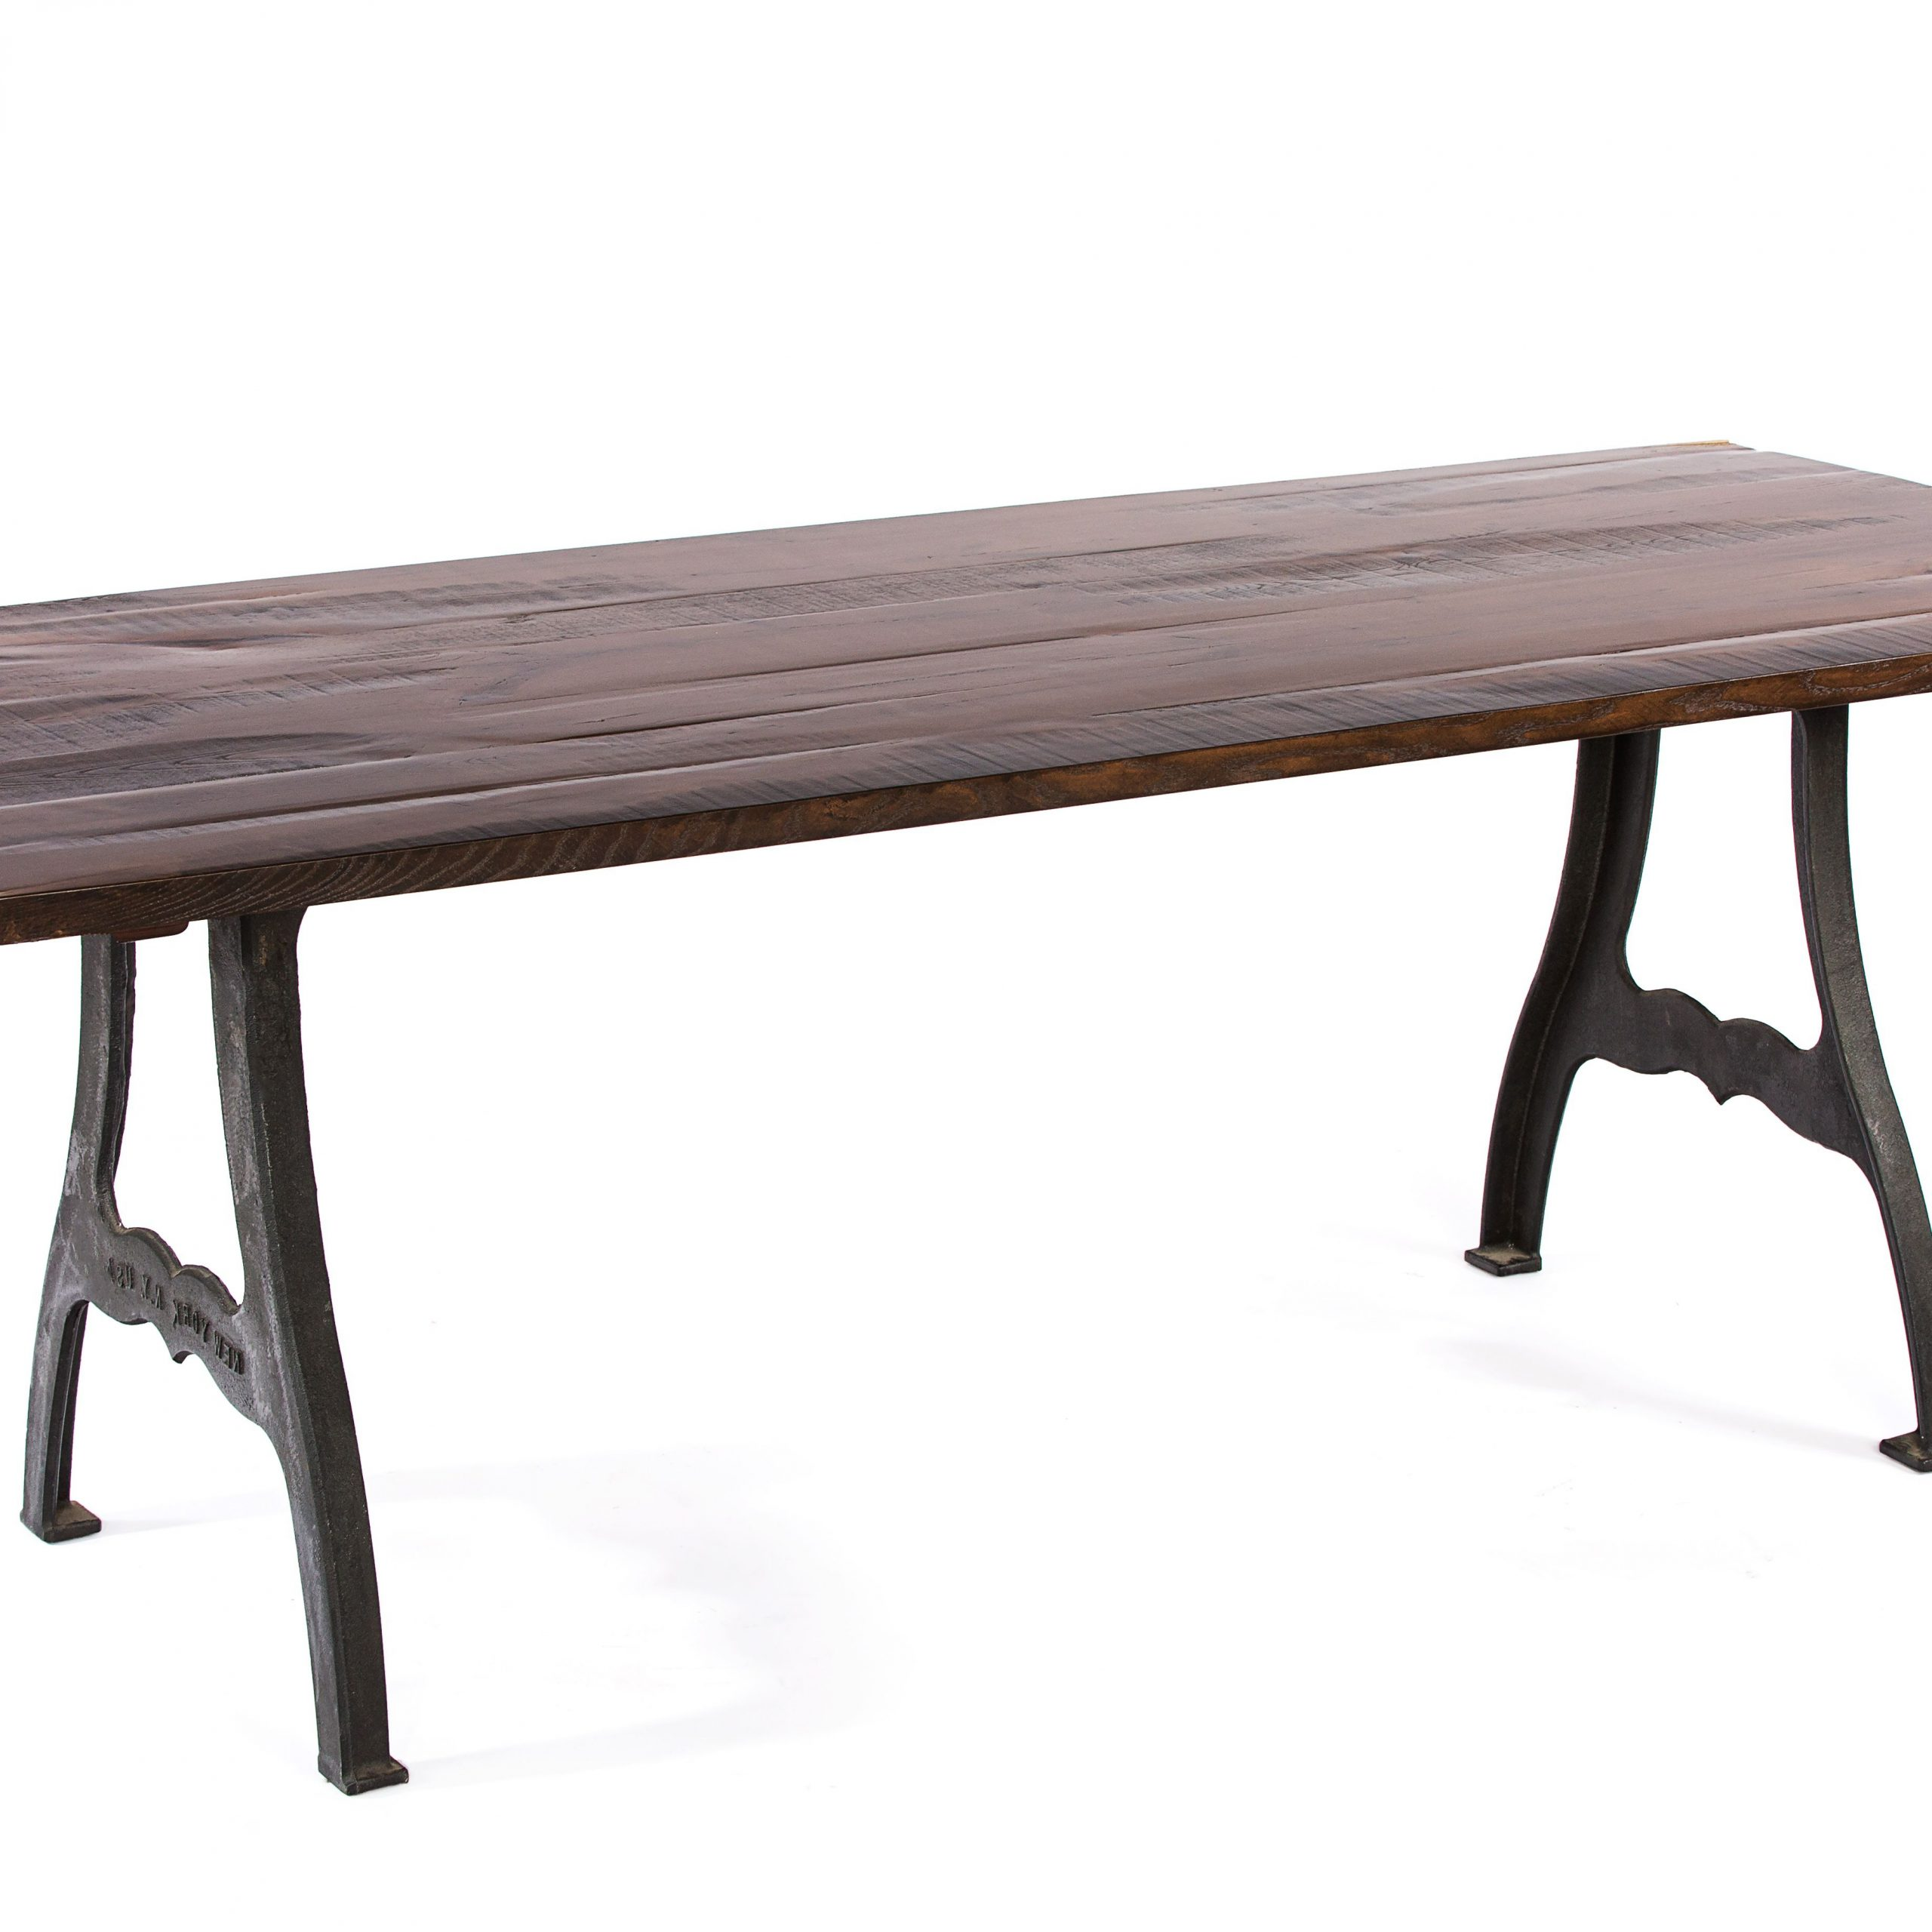 Buy A Hand Crafted The Williamsburg Reclaimed Wood Dining intended for Fashionable Dining Tables With Stained Ash Walnut